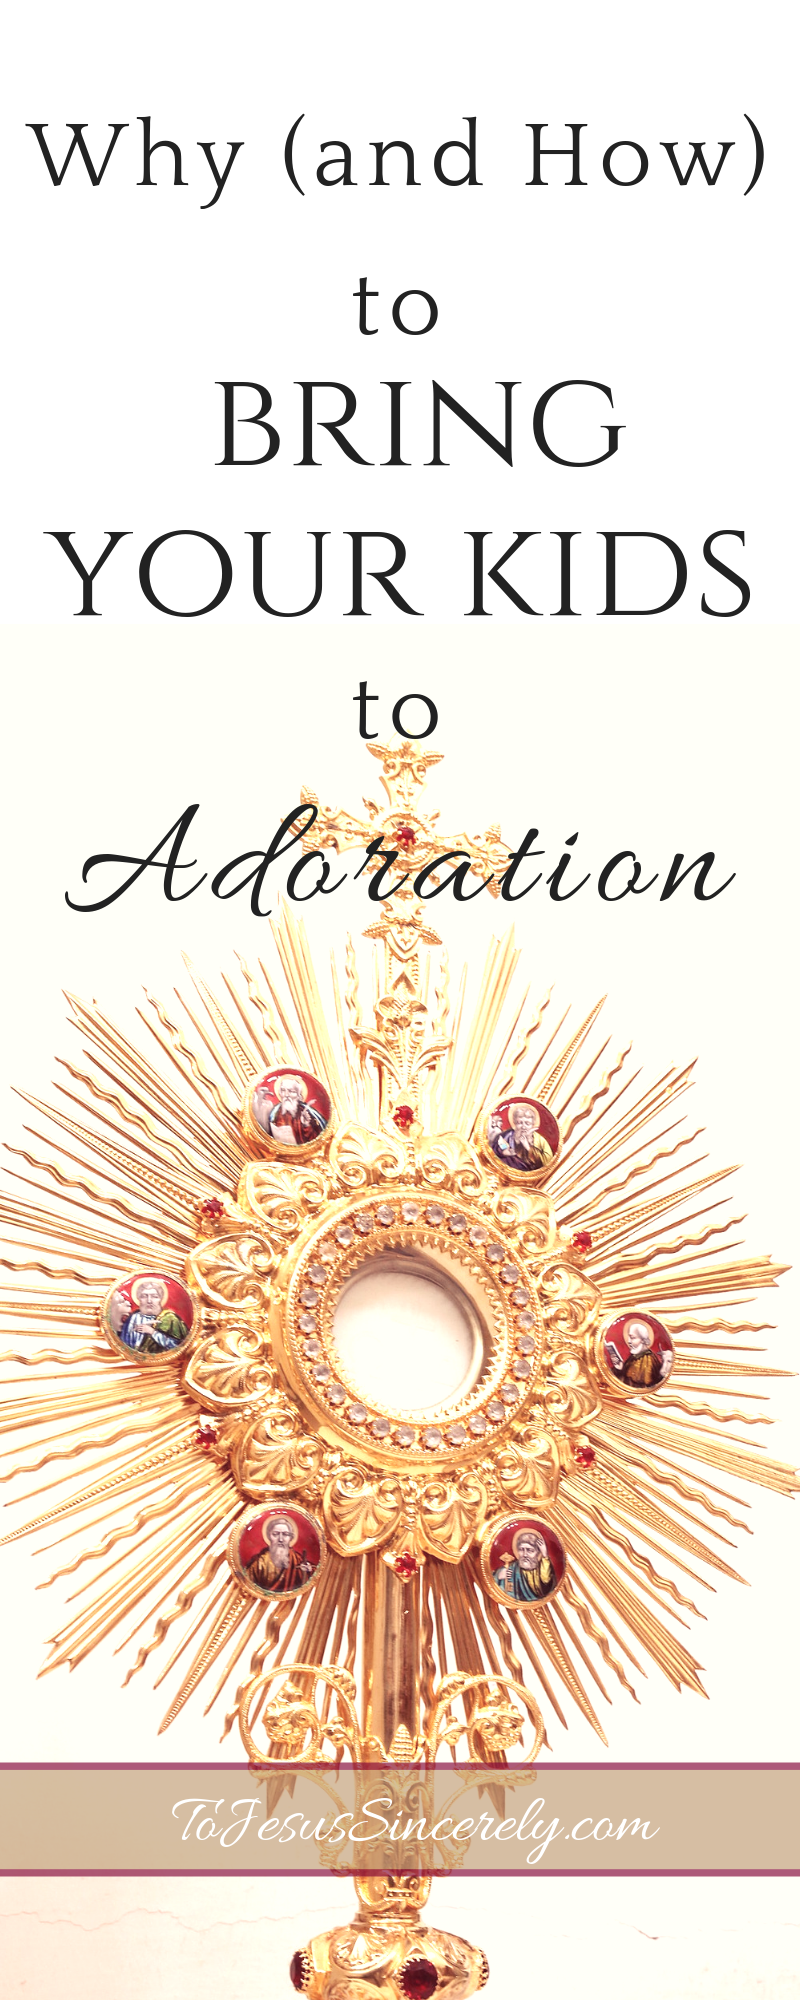 adoration brochure cover